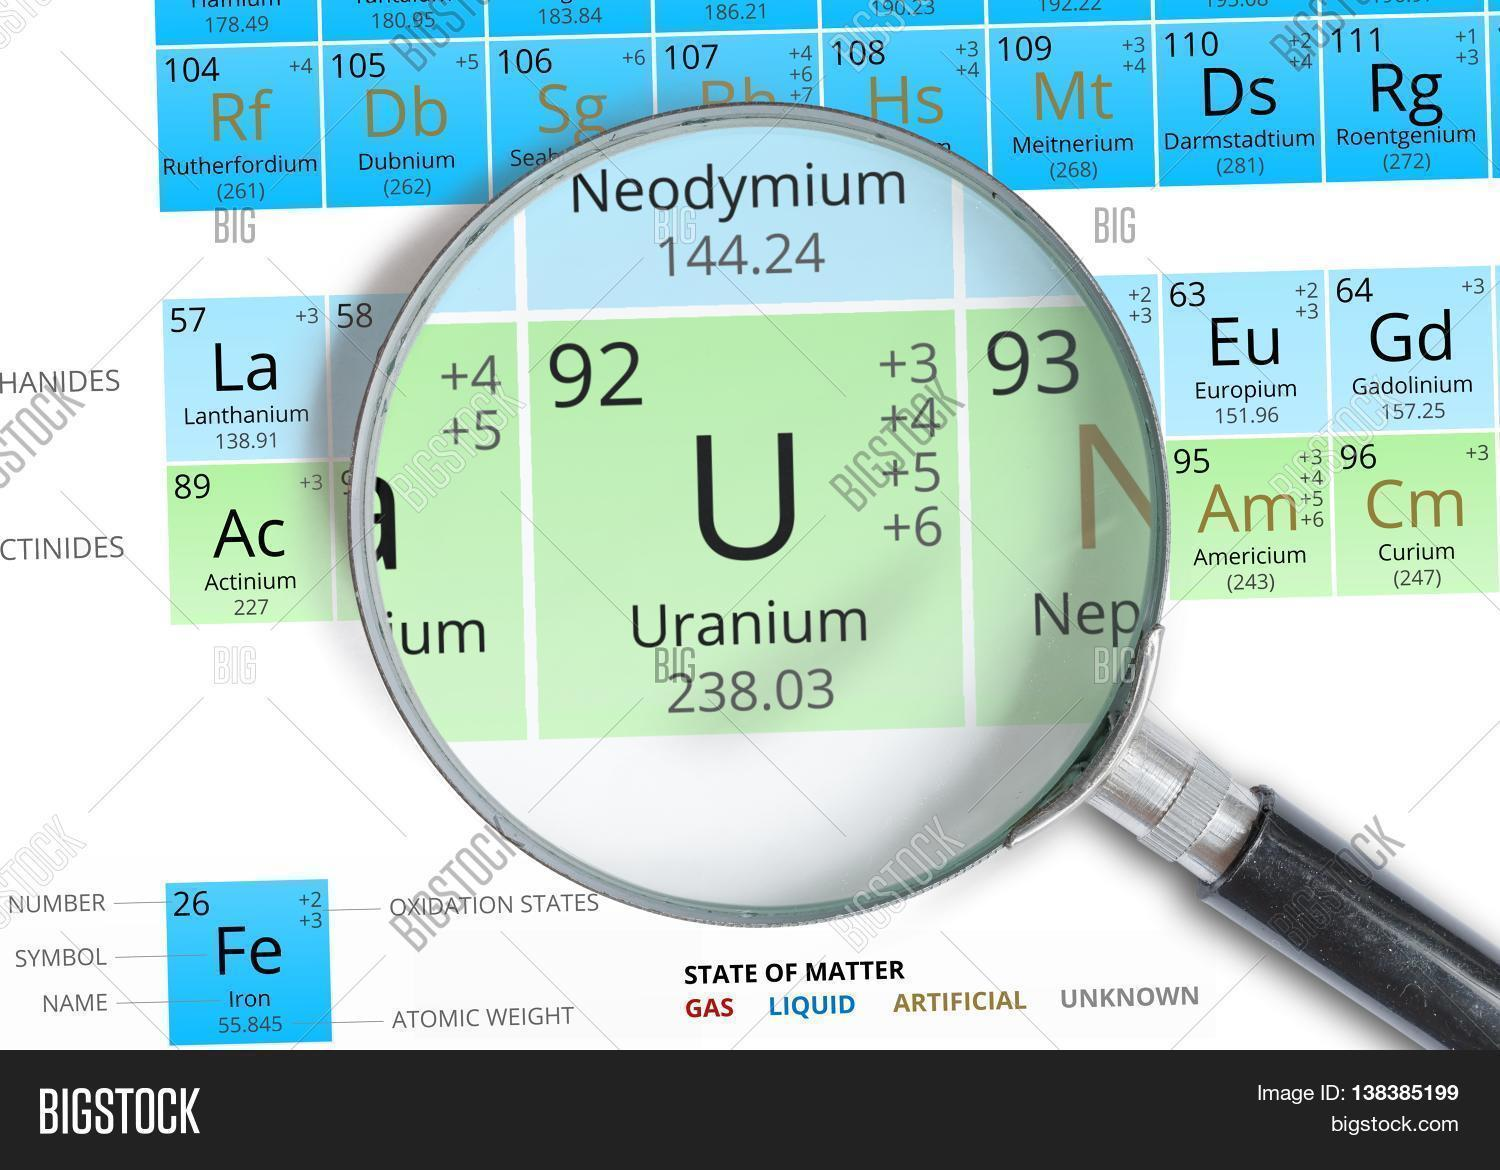 Uranium symbol u image photo free trial bigstock uranium symbol u element of the periodic table zoomed with ma urtaz Gallery